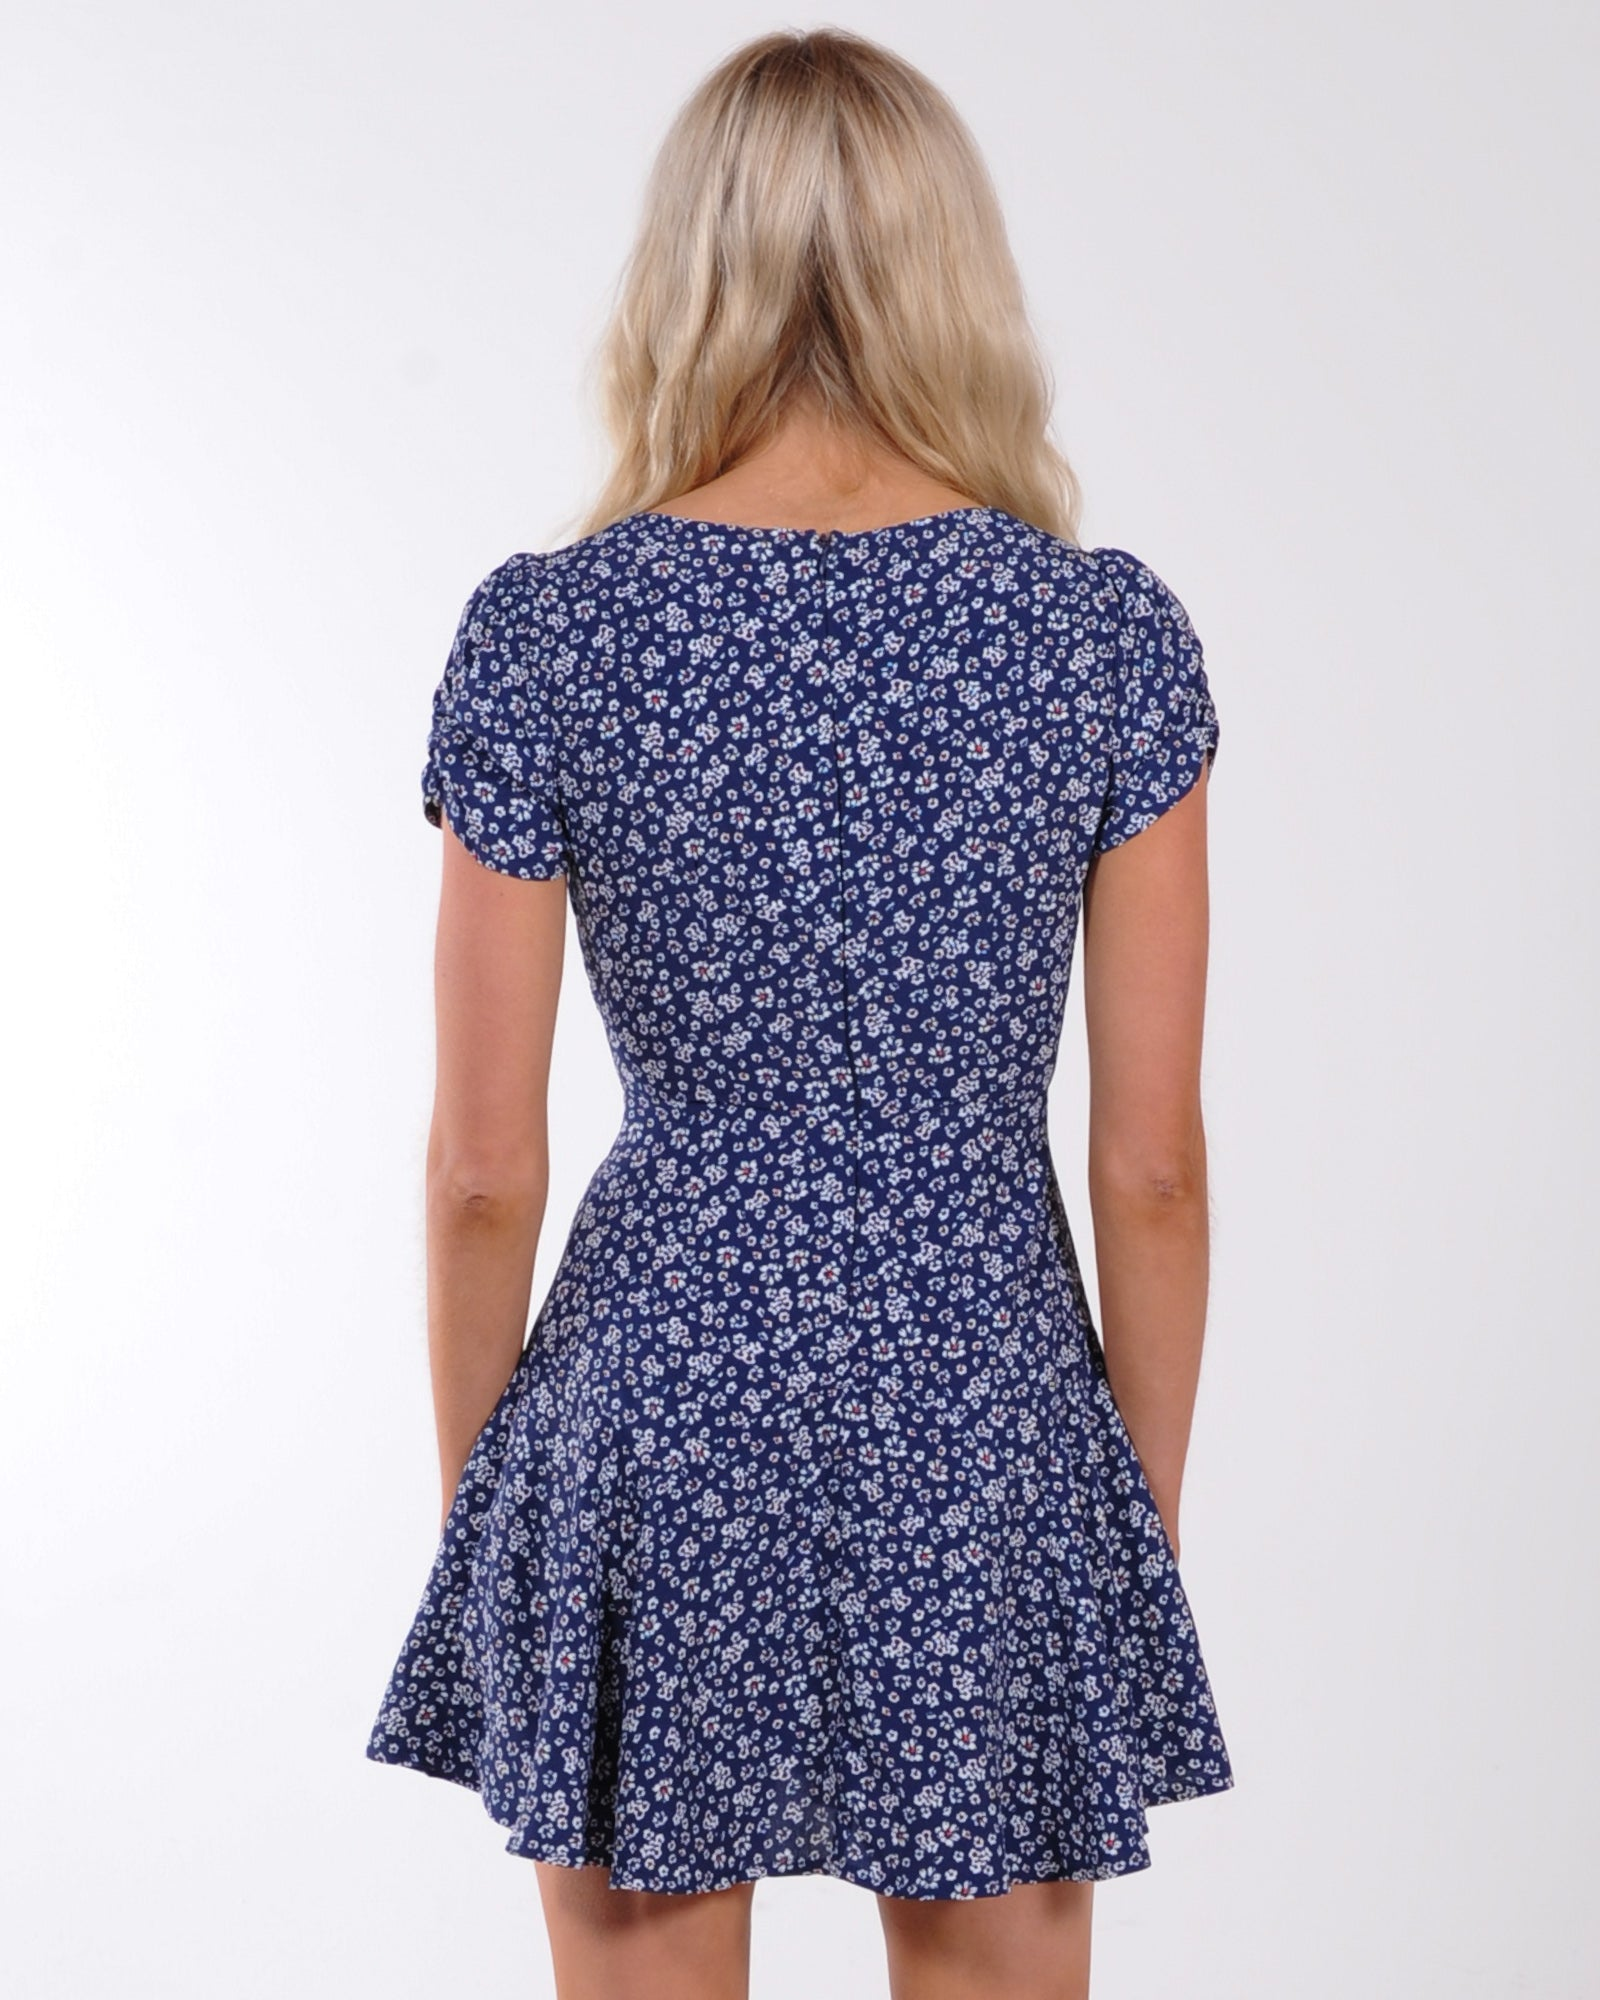 A New Chapter Floral Dress - Navy